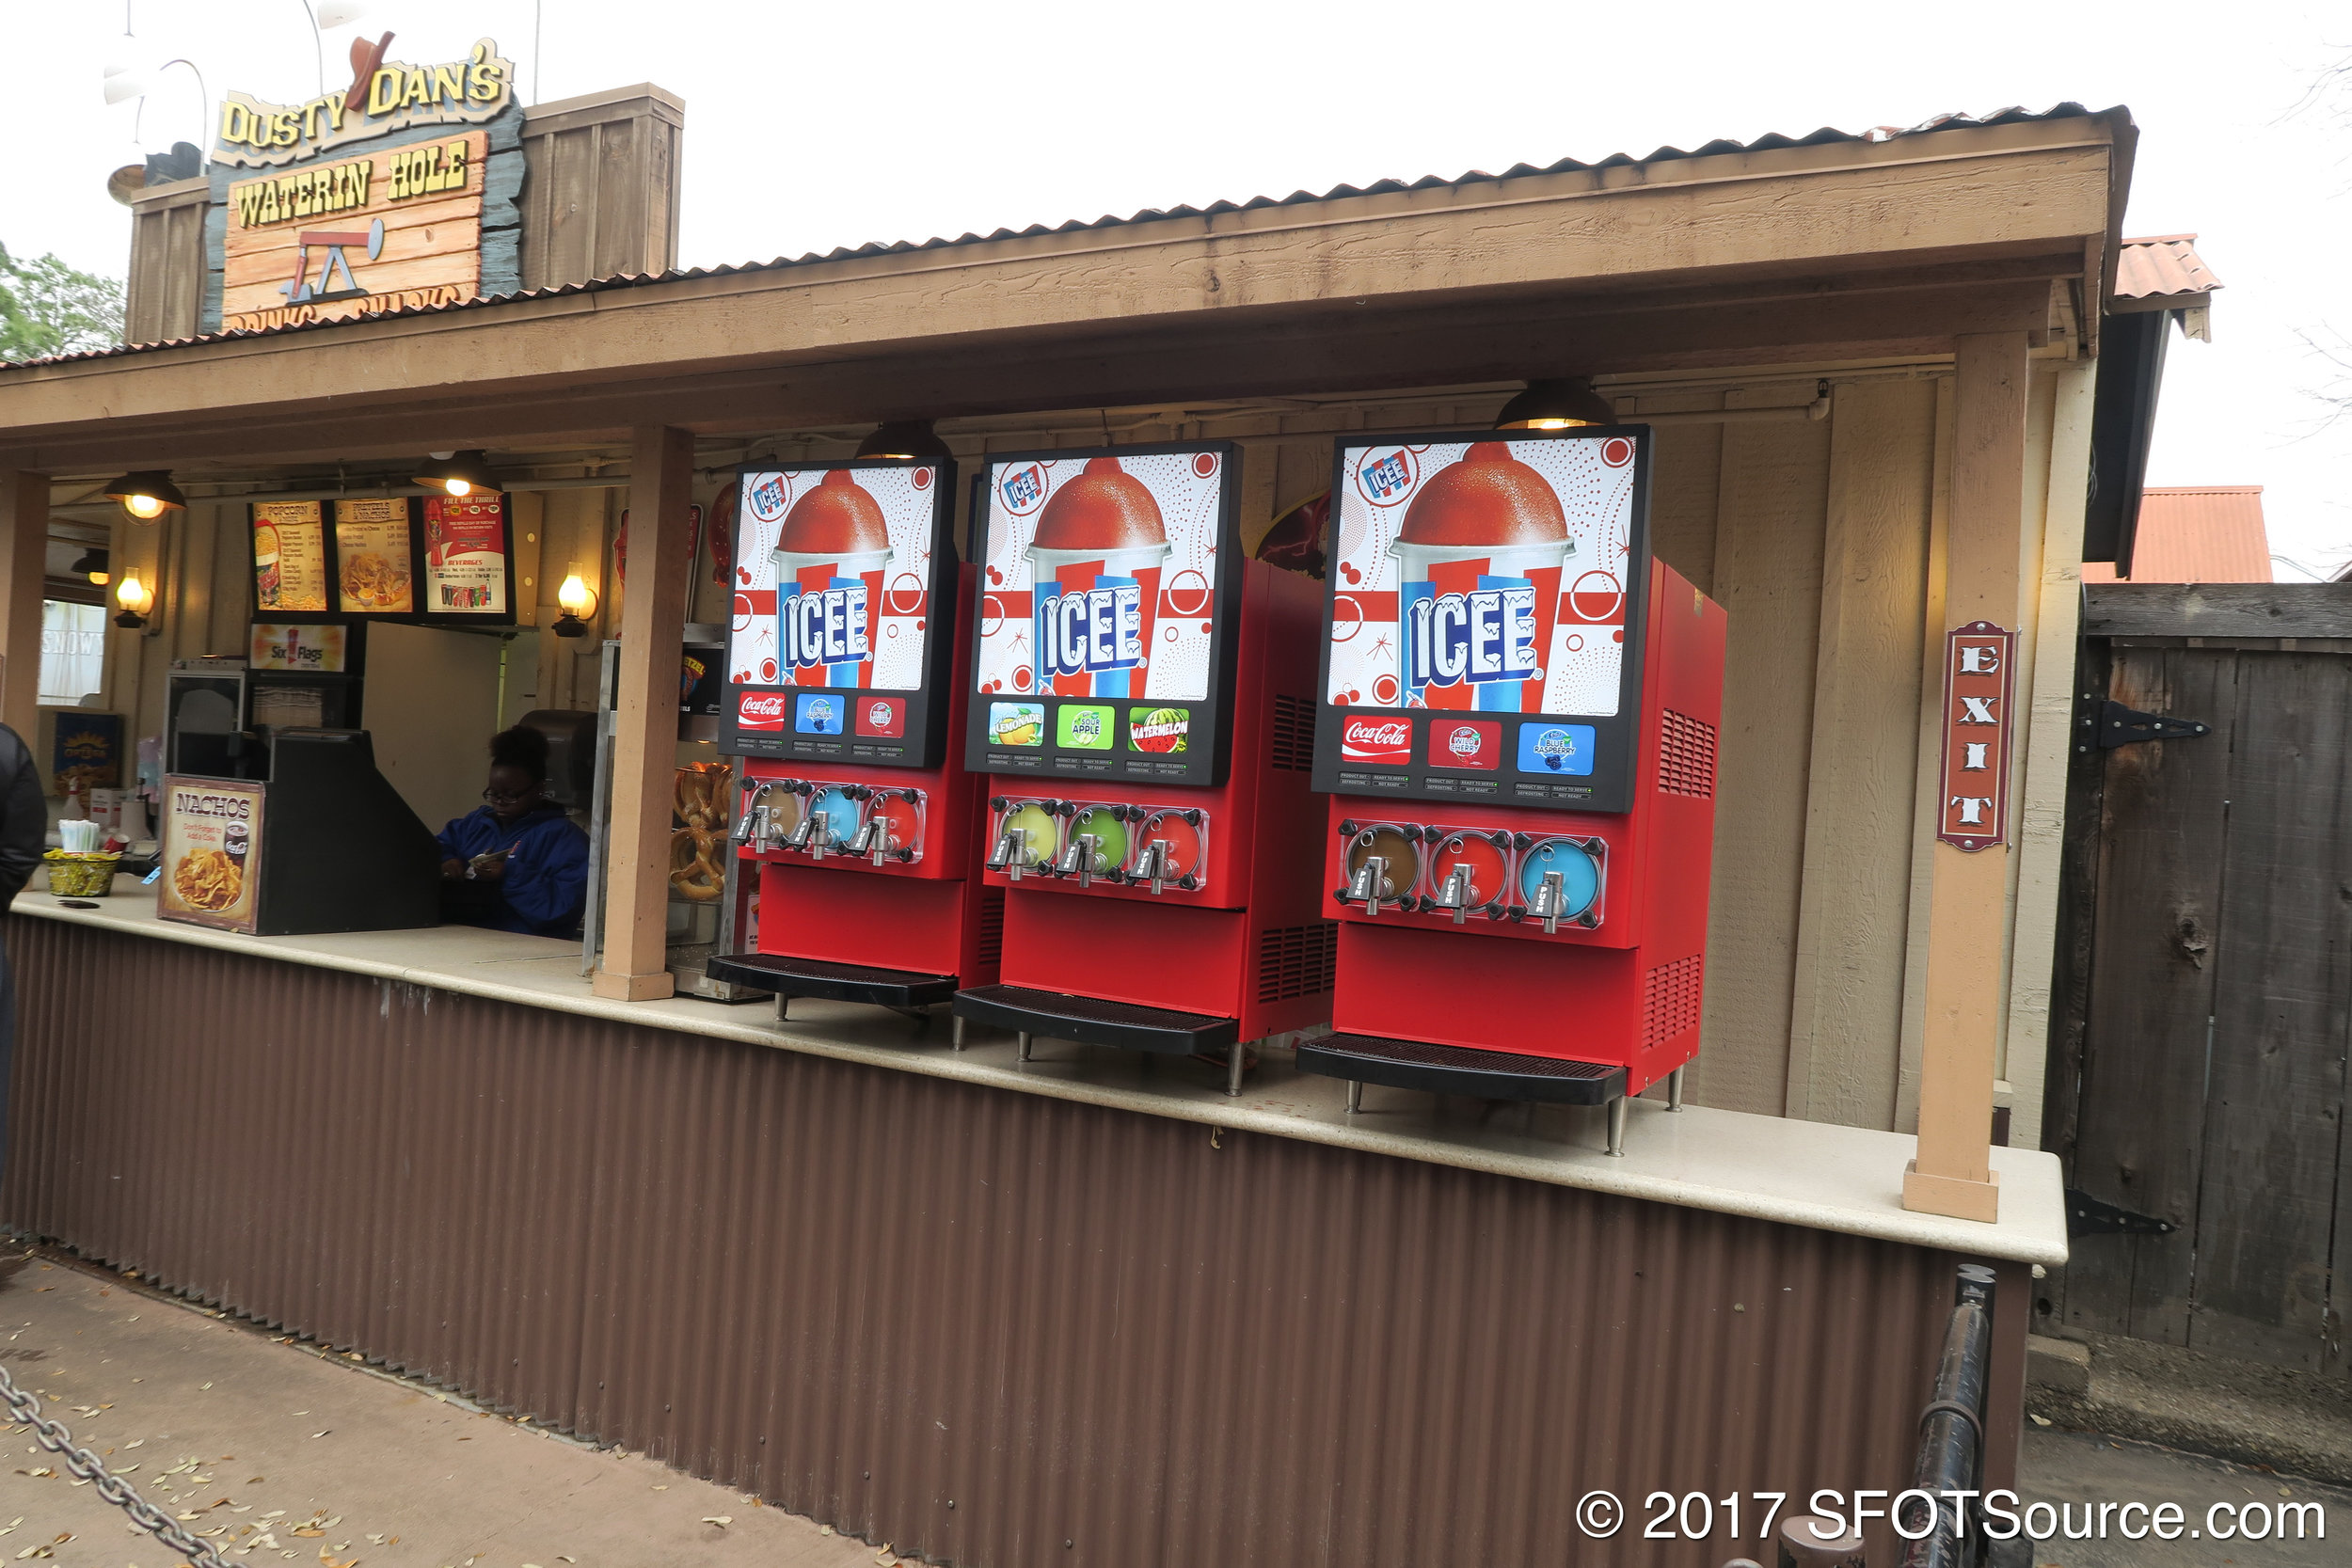 The stand features multiple frozen drink flavors.